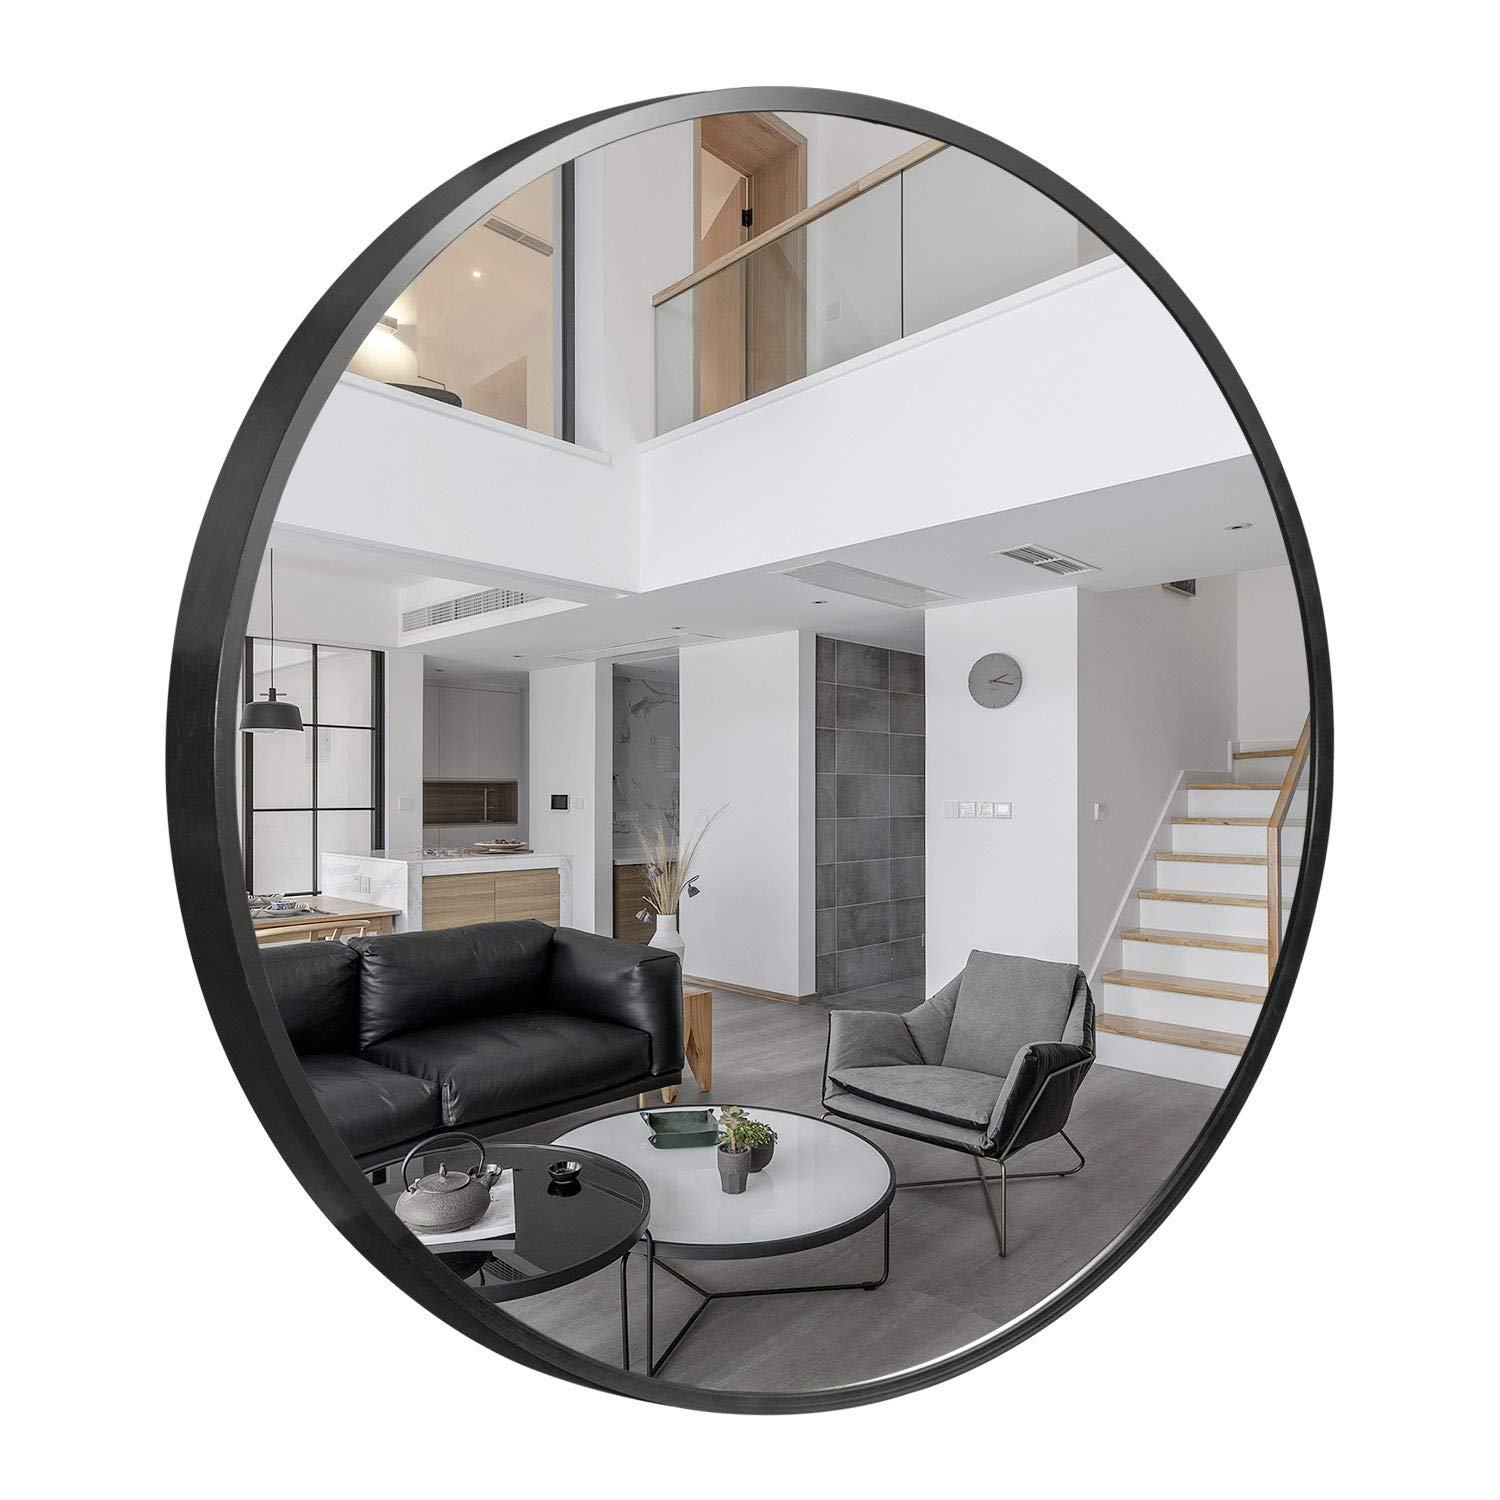 Buy Self Round Wall Mirror 20 Large Wall Mounted Mirror Aluminum Alloy Frame Round Mirror For Bathroom Entry Dining Room Living Room Black Online At Low Prices In India Amazon In